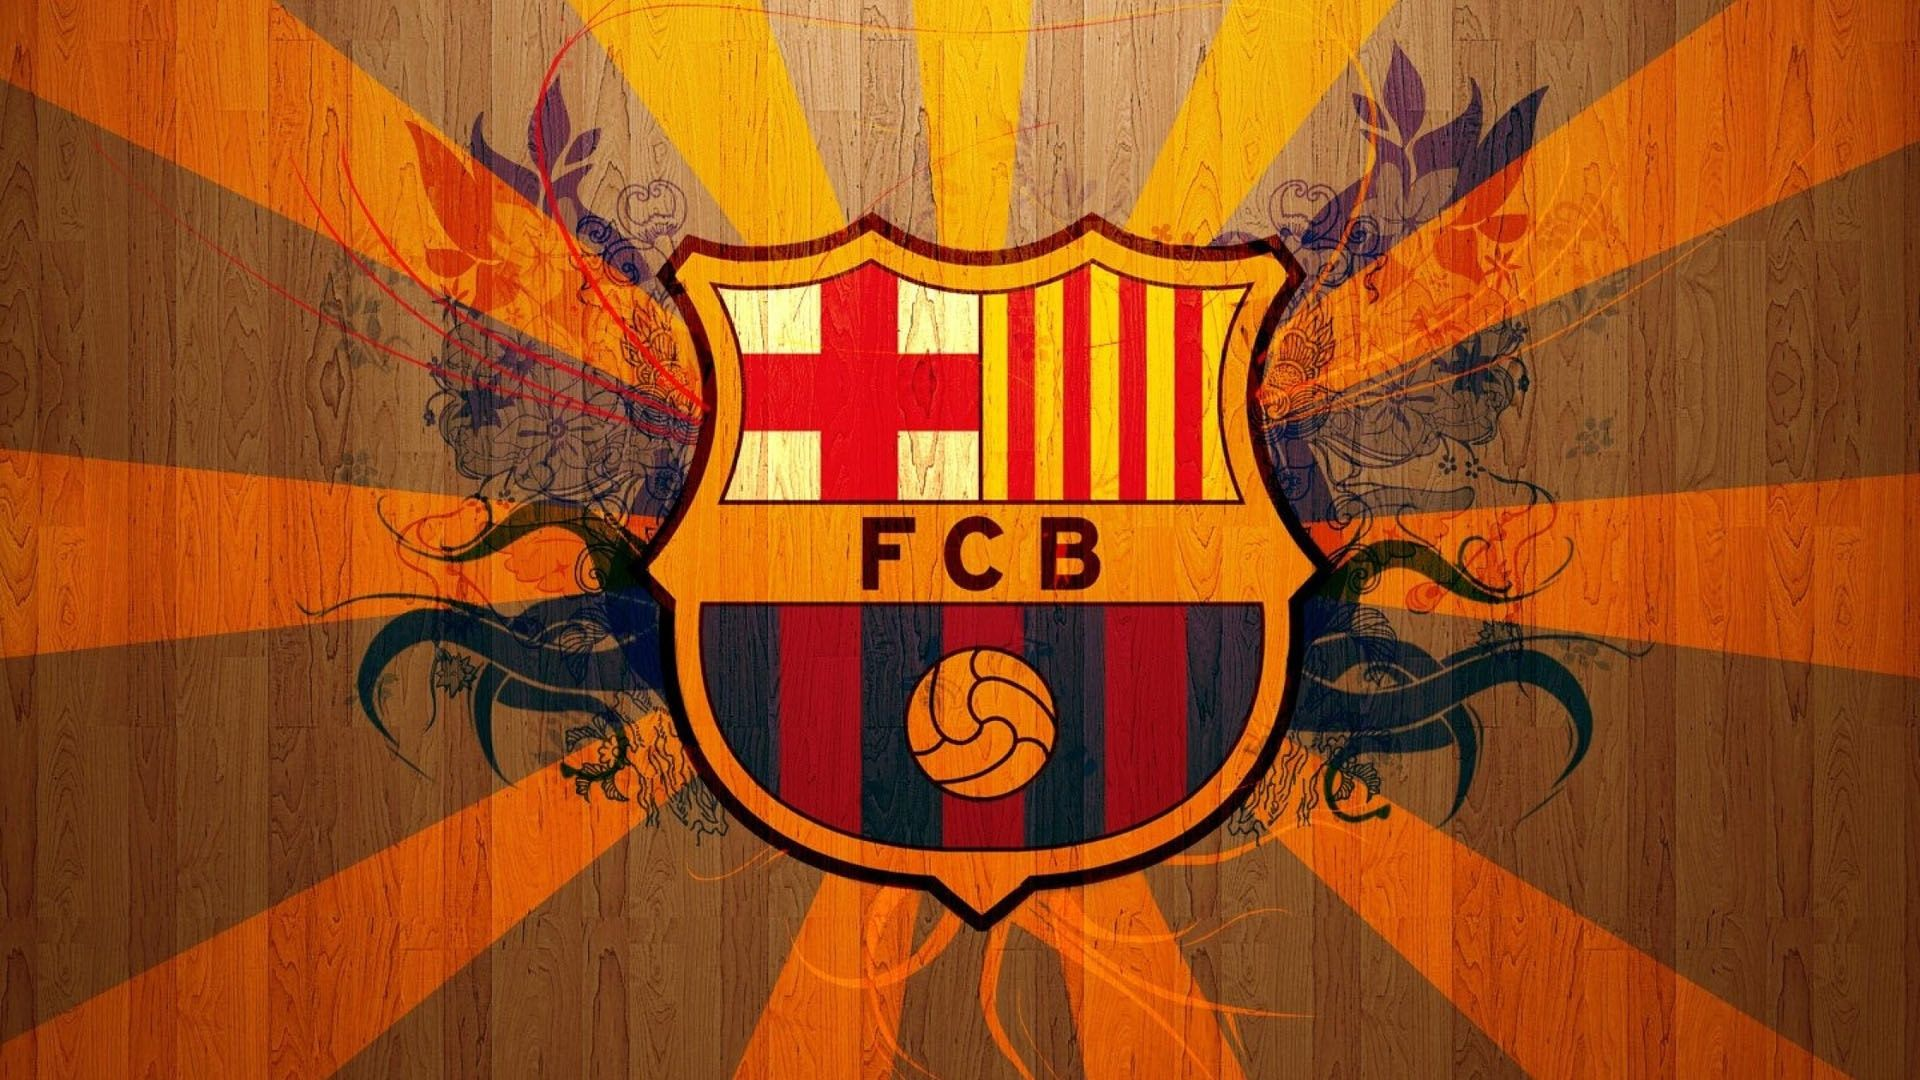 fcb logo hd widescreen 2 hd wallpapers visual bucket list